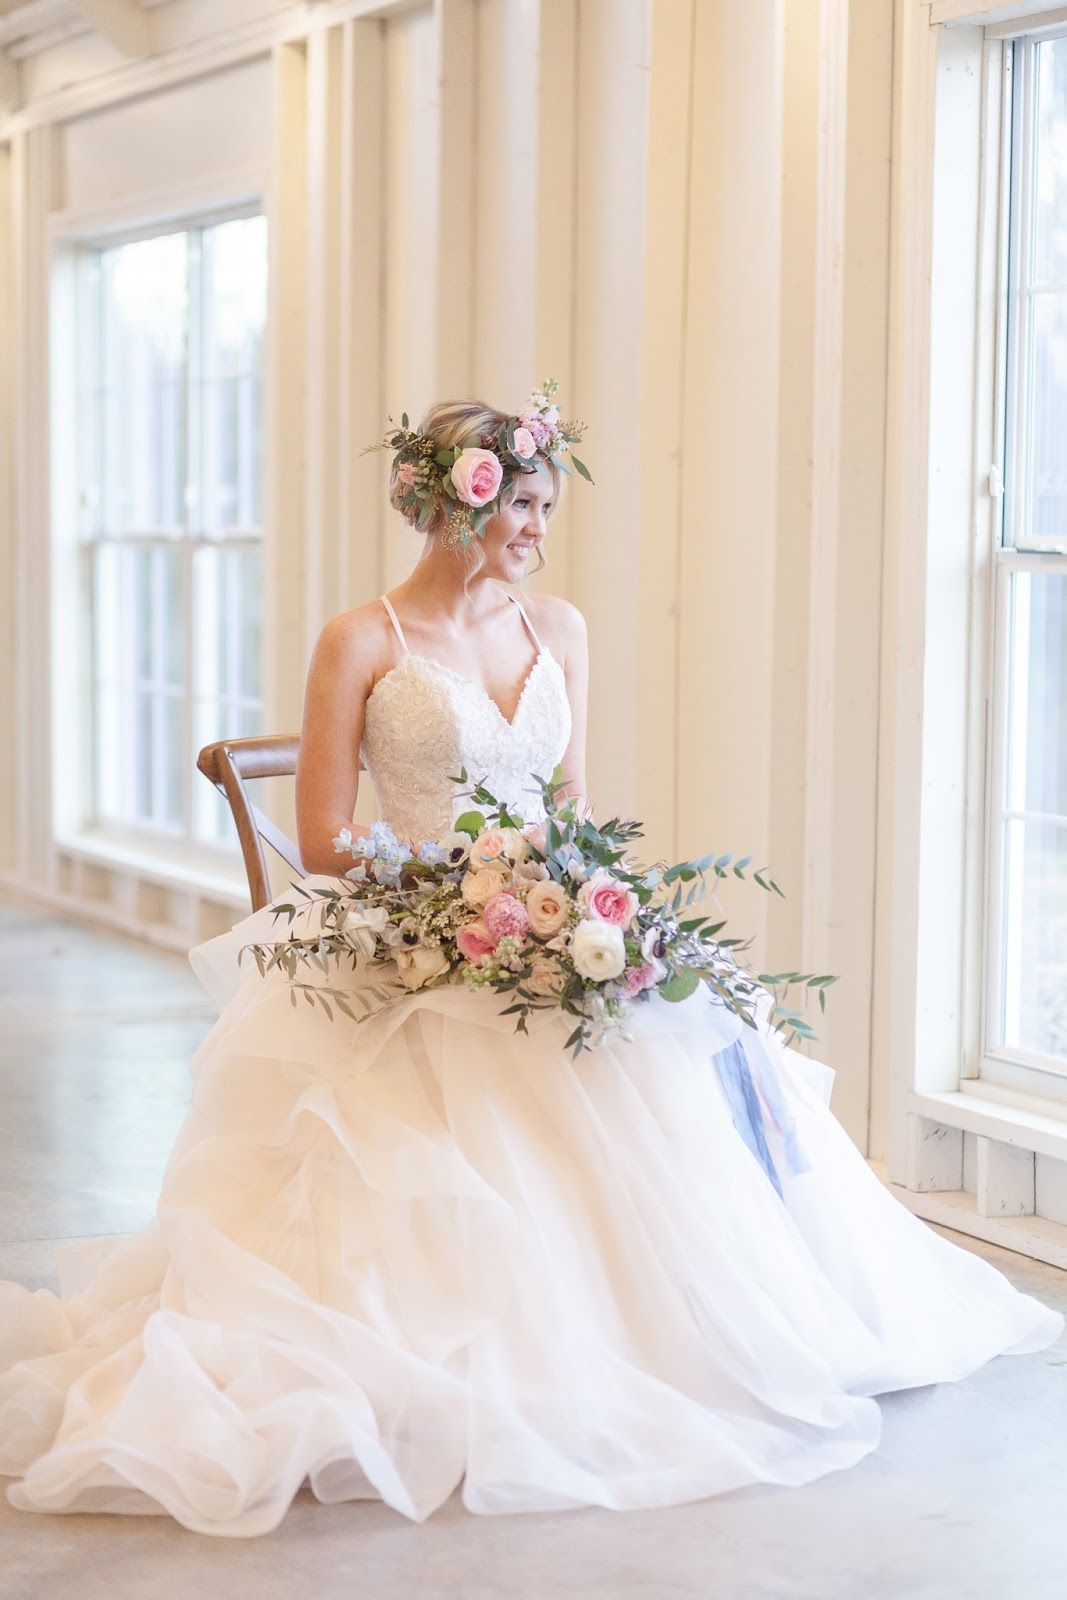 TYING THE KNOT IN STYLE Wedding dresses, Strapless